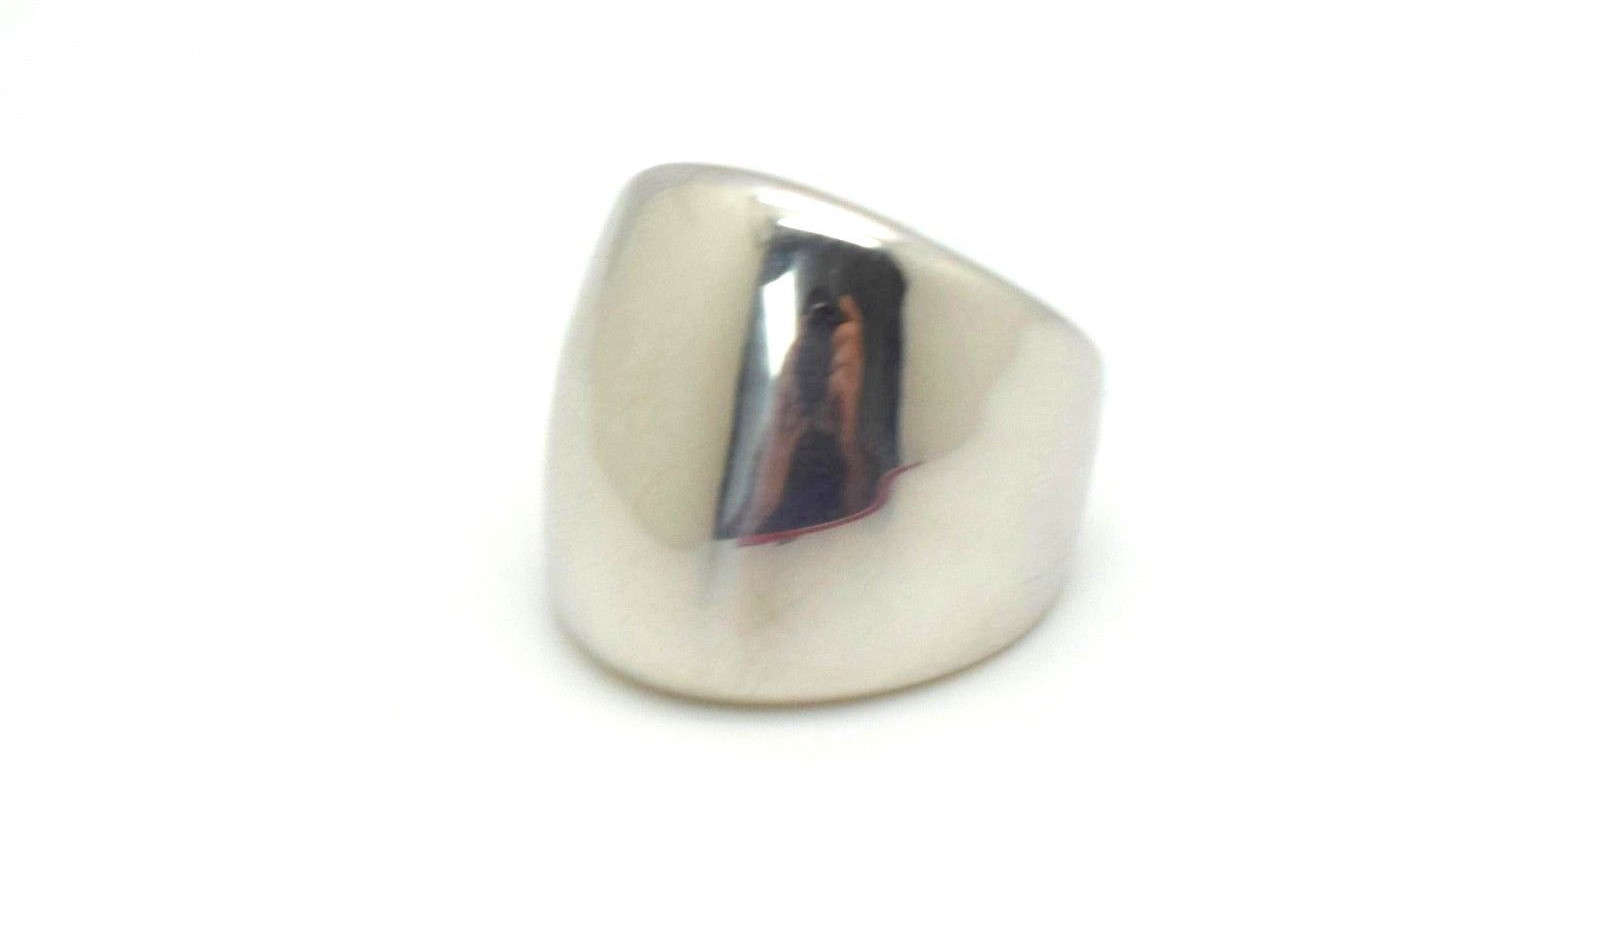 Milor Italy Dome Ring 18k White Gold Resin Filled Size 8.75